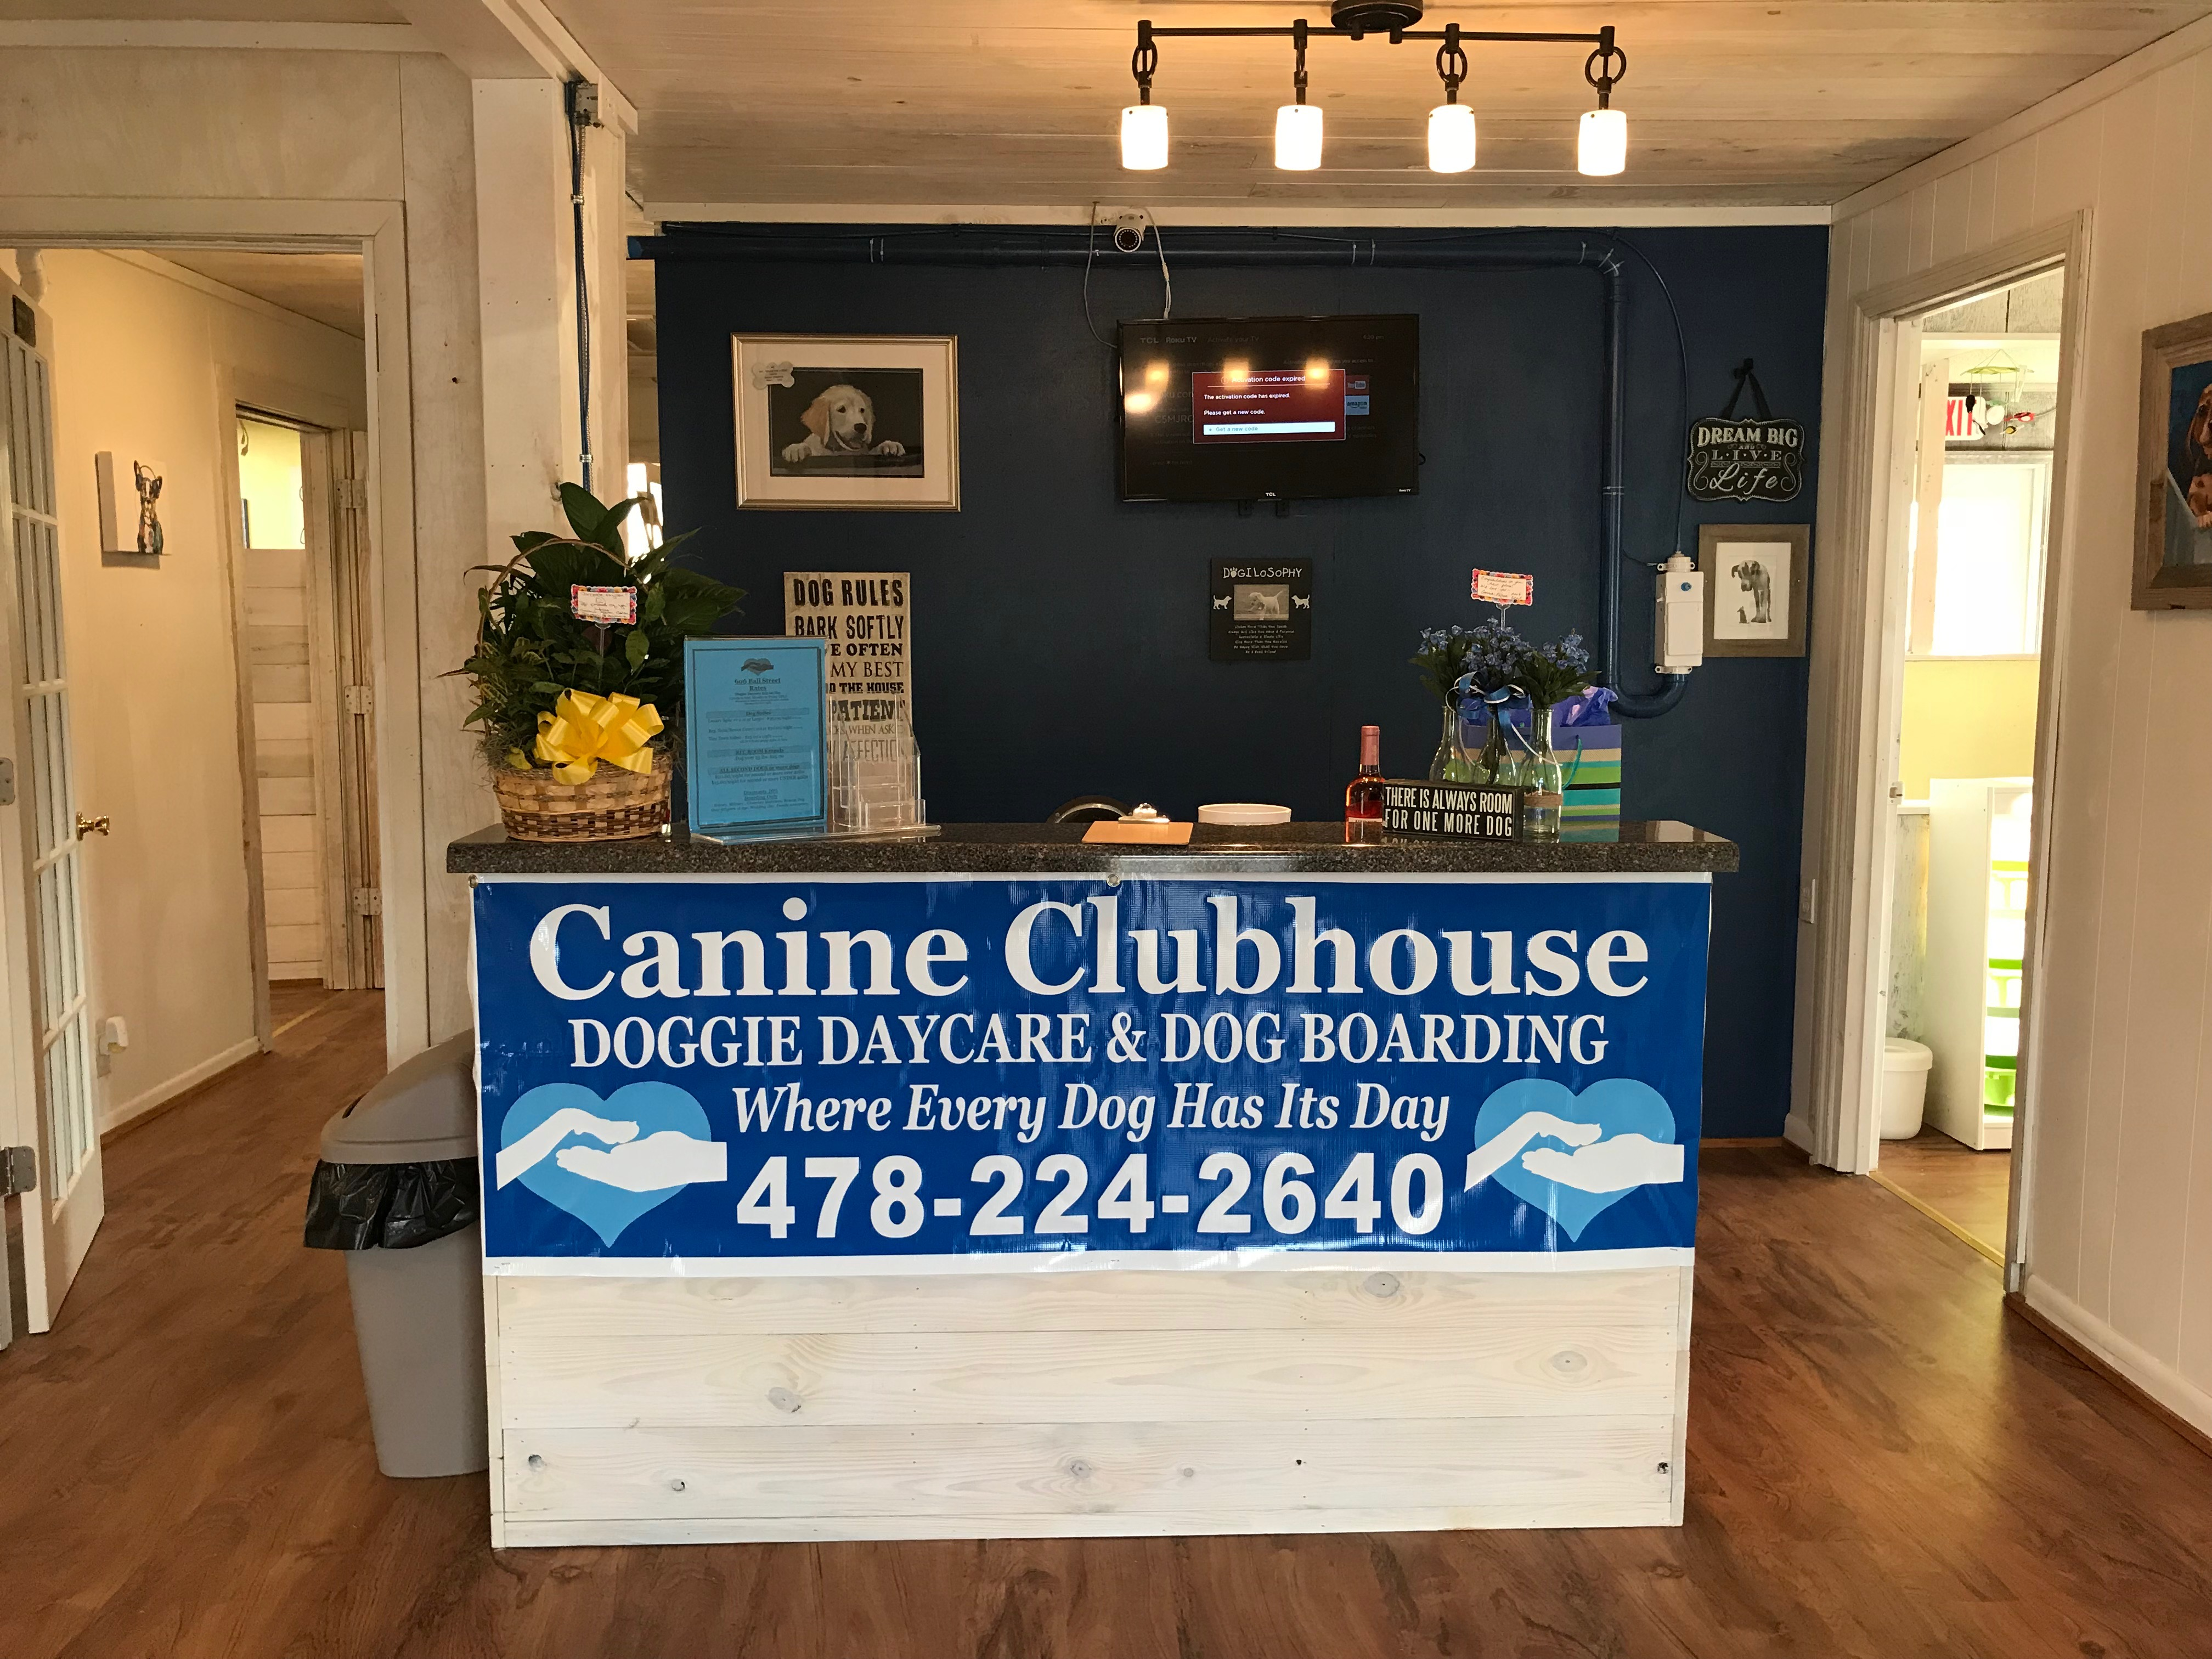 Cclobby Dog Boarding Canine Clubhouse